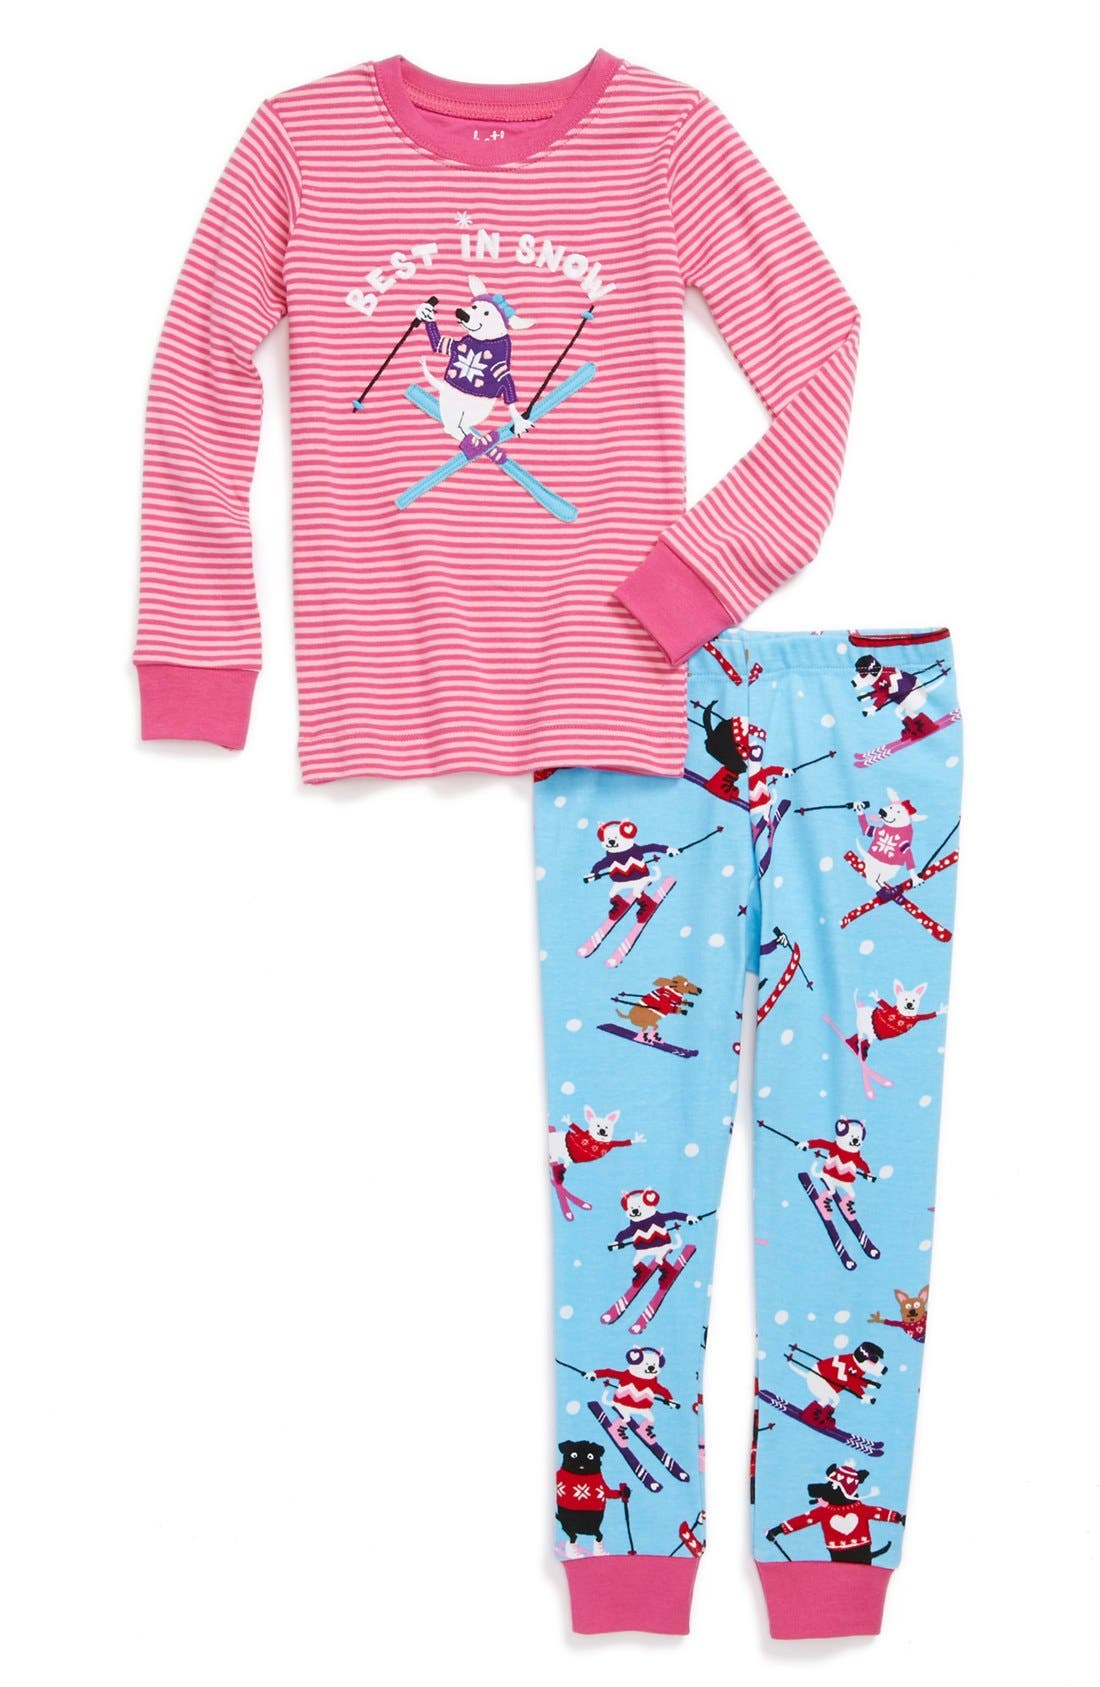 Alternate Image 1 Selected - Hatley 'Best in Snow' Two-Piece Fitted Pajamas (Toddler Girls)